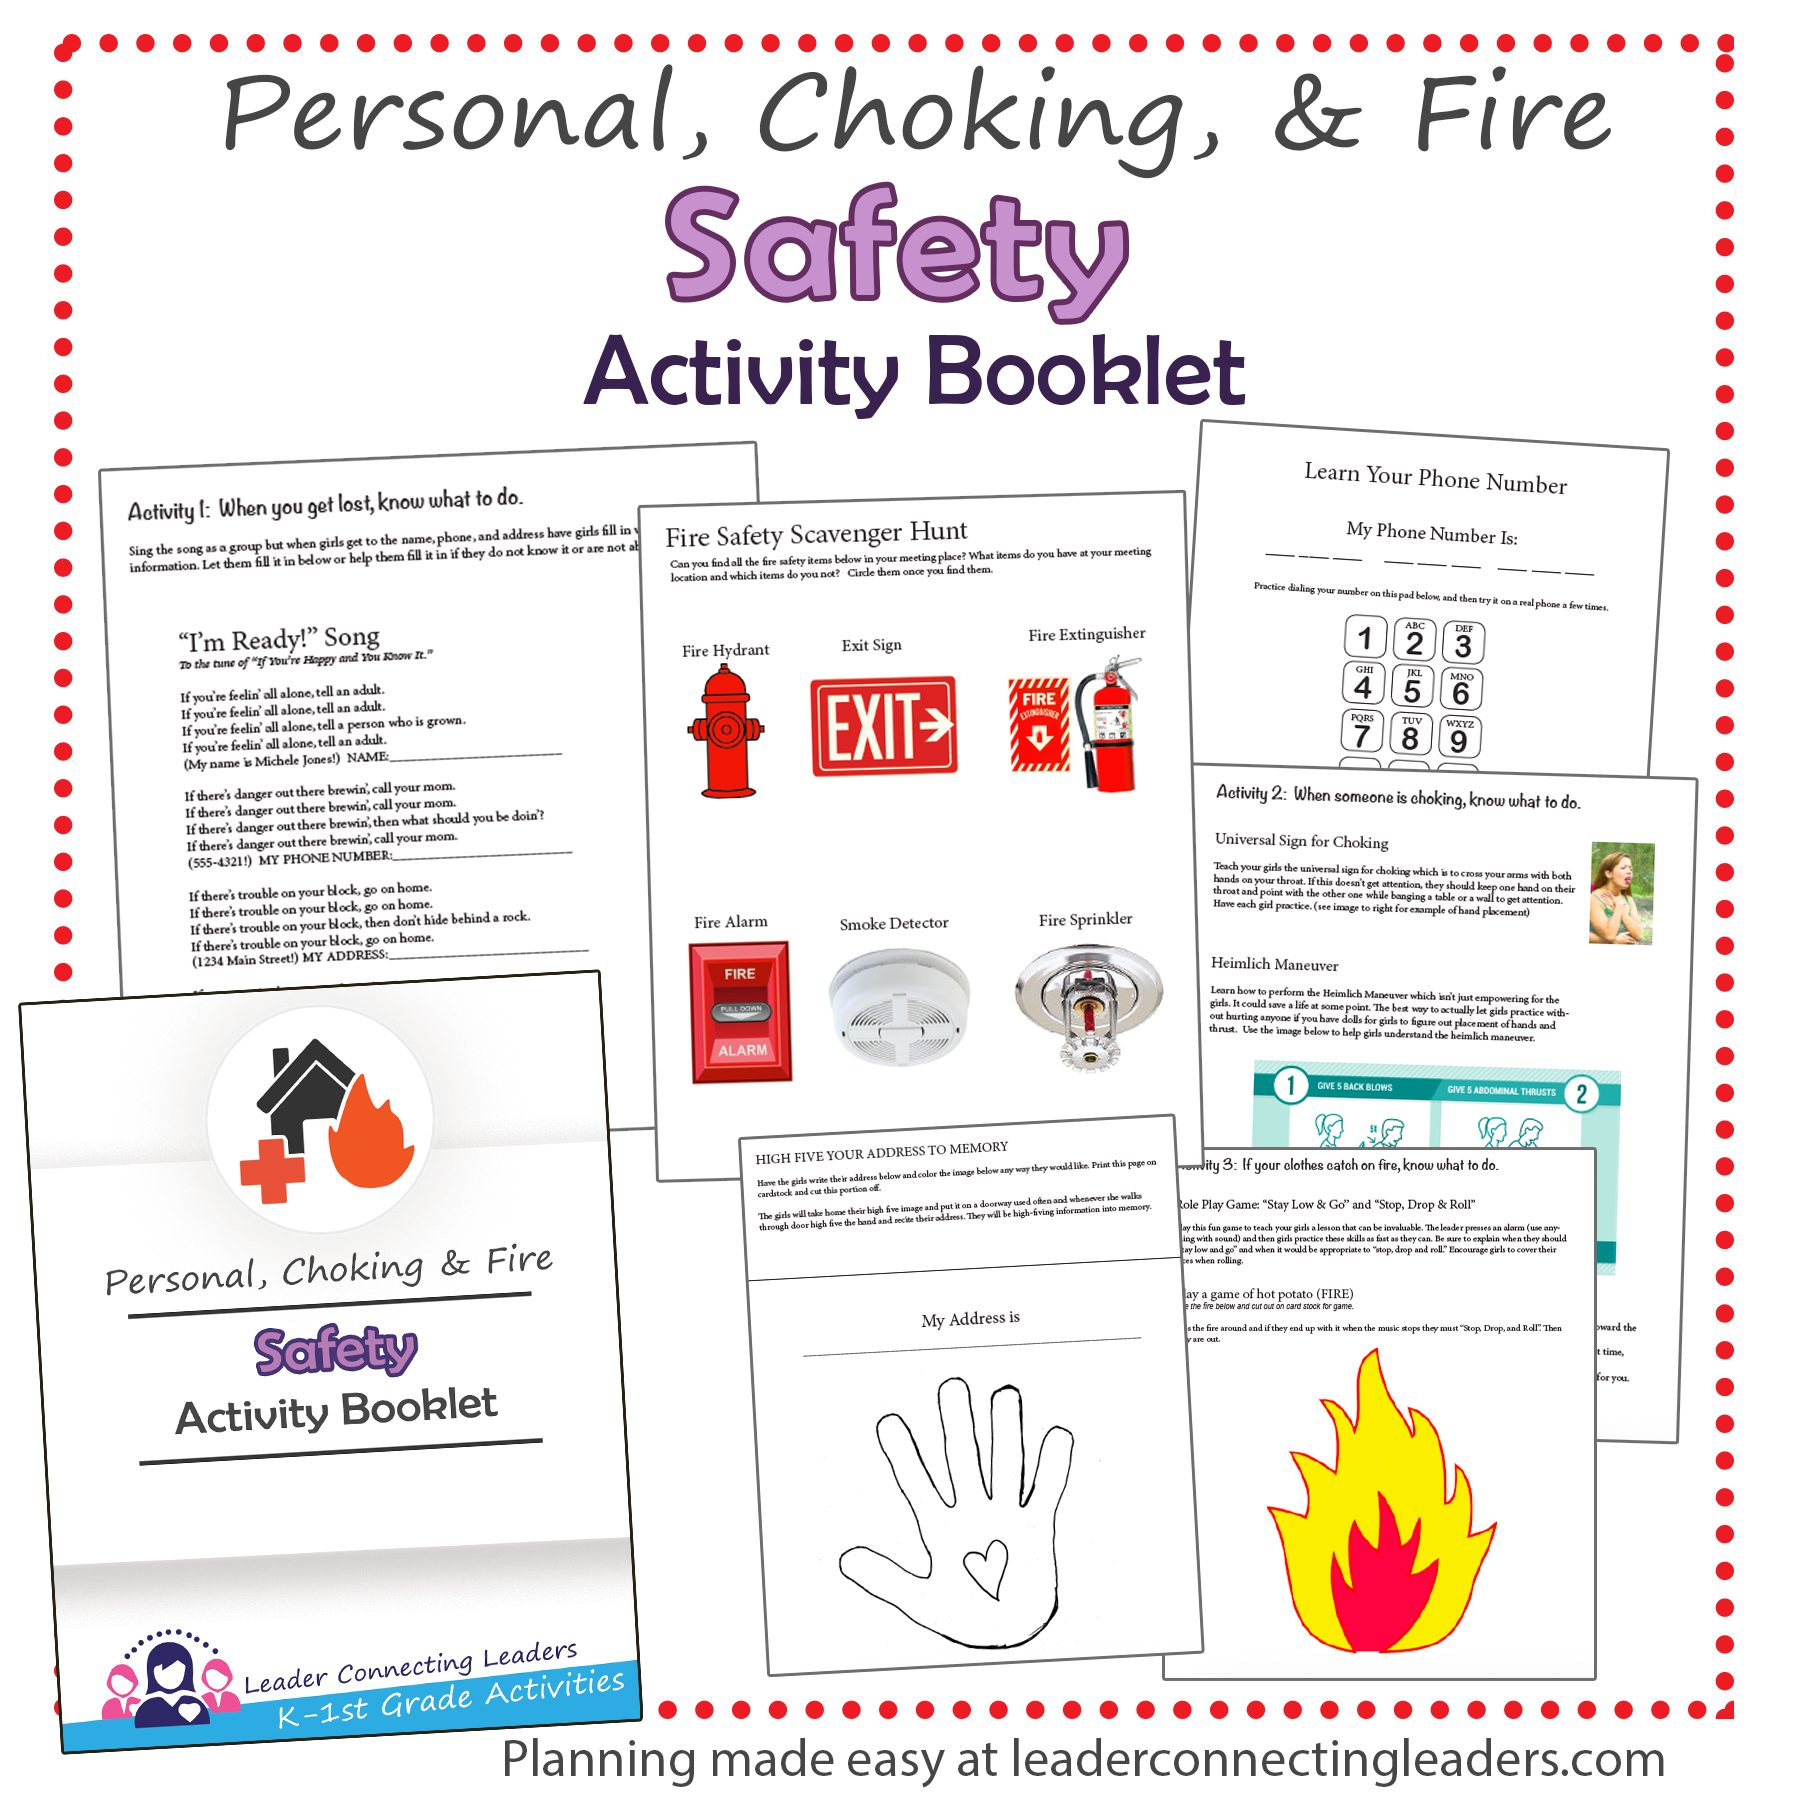 Safety Activity Booklet